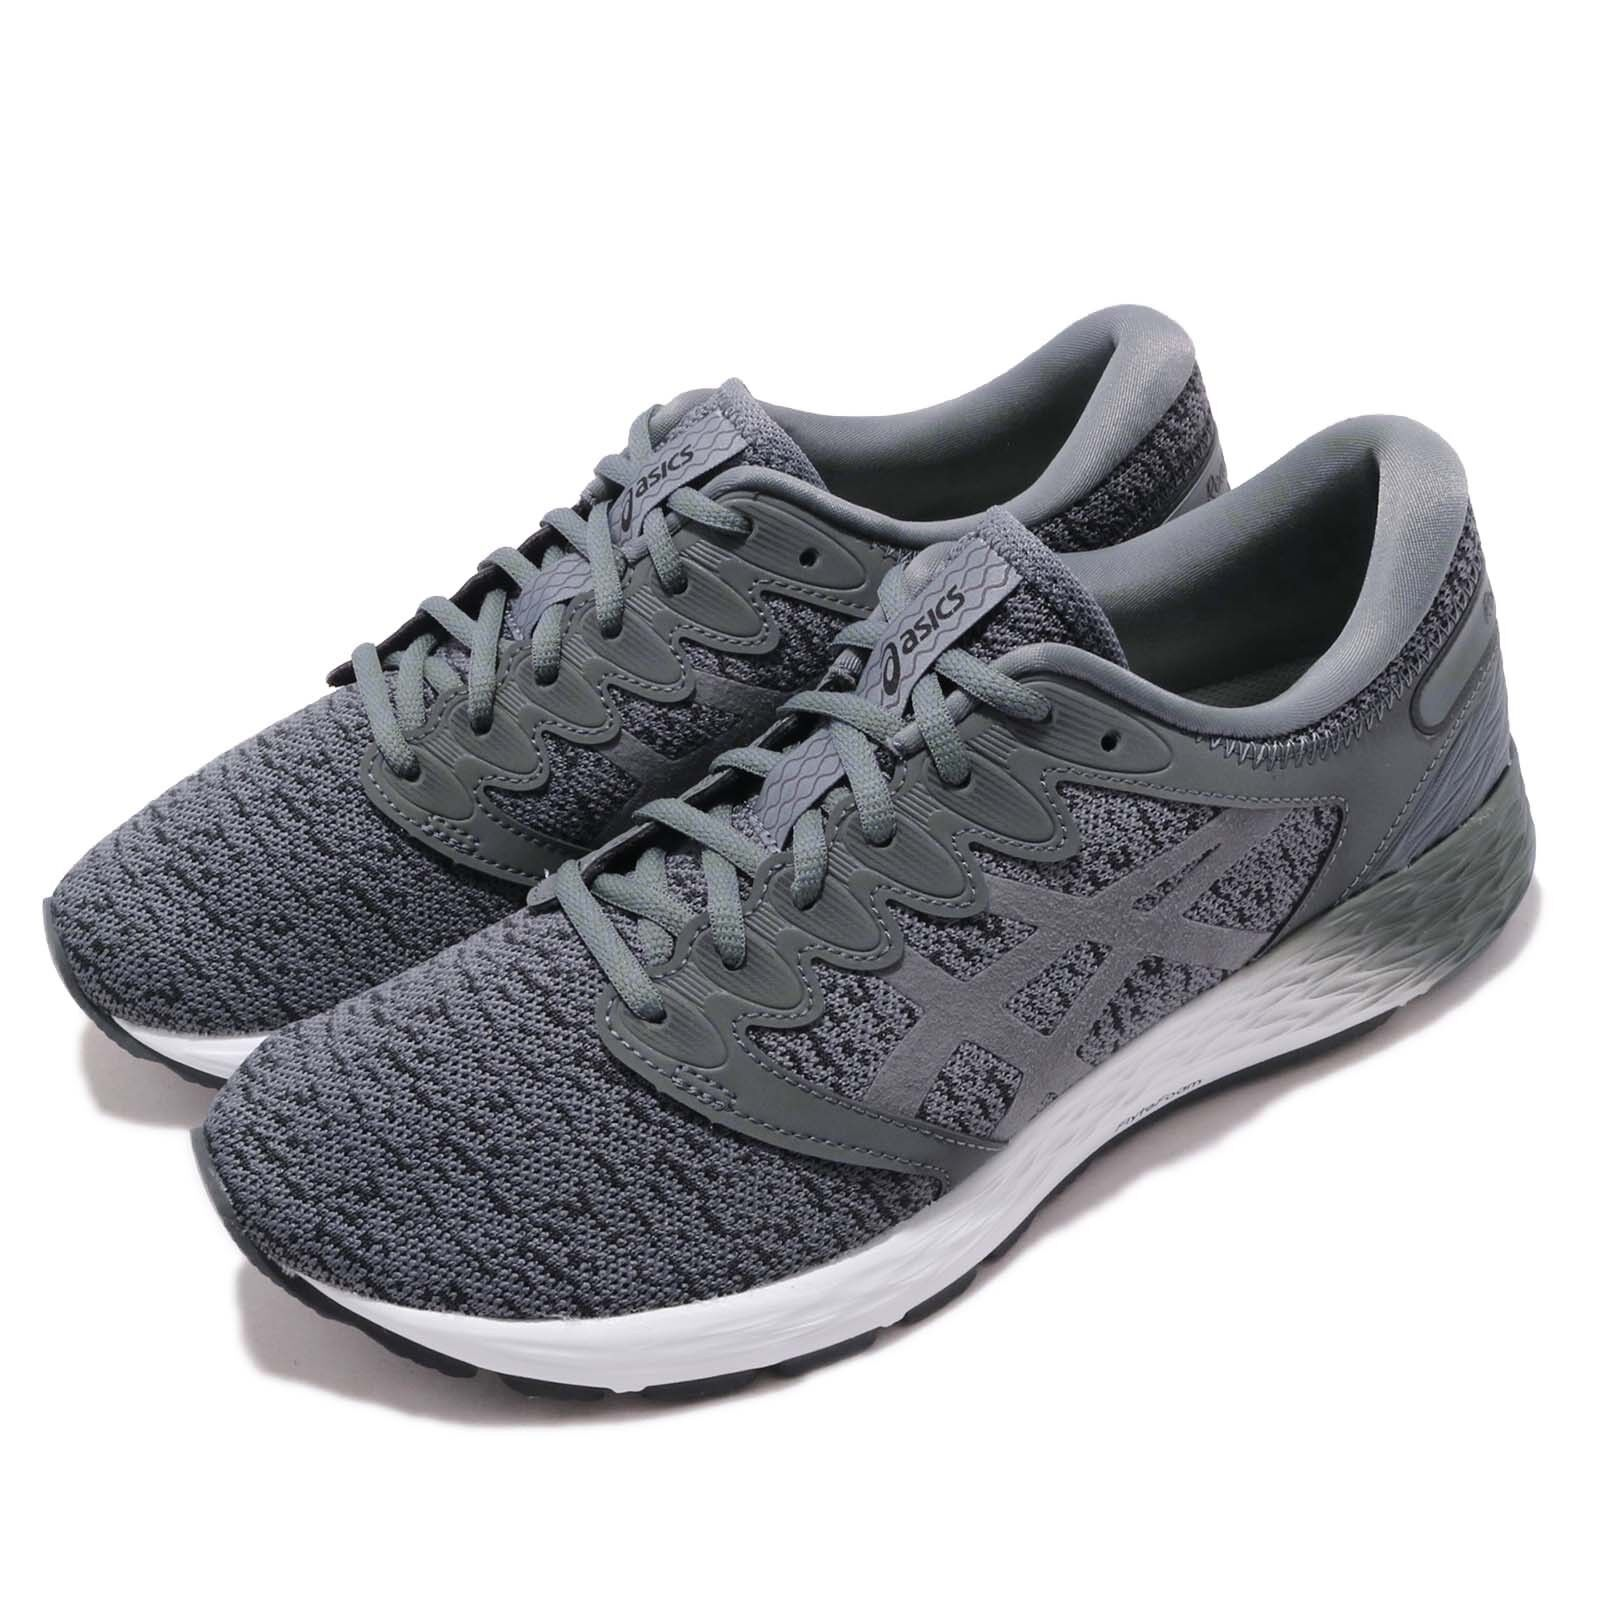 Asics RoadHawk FF 2 MX Grey Men Running Training shoes Sneakers 1011A255-021